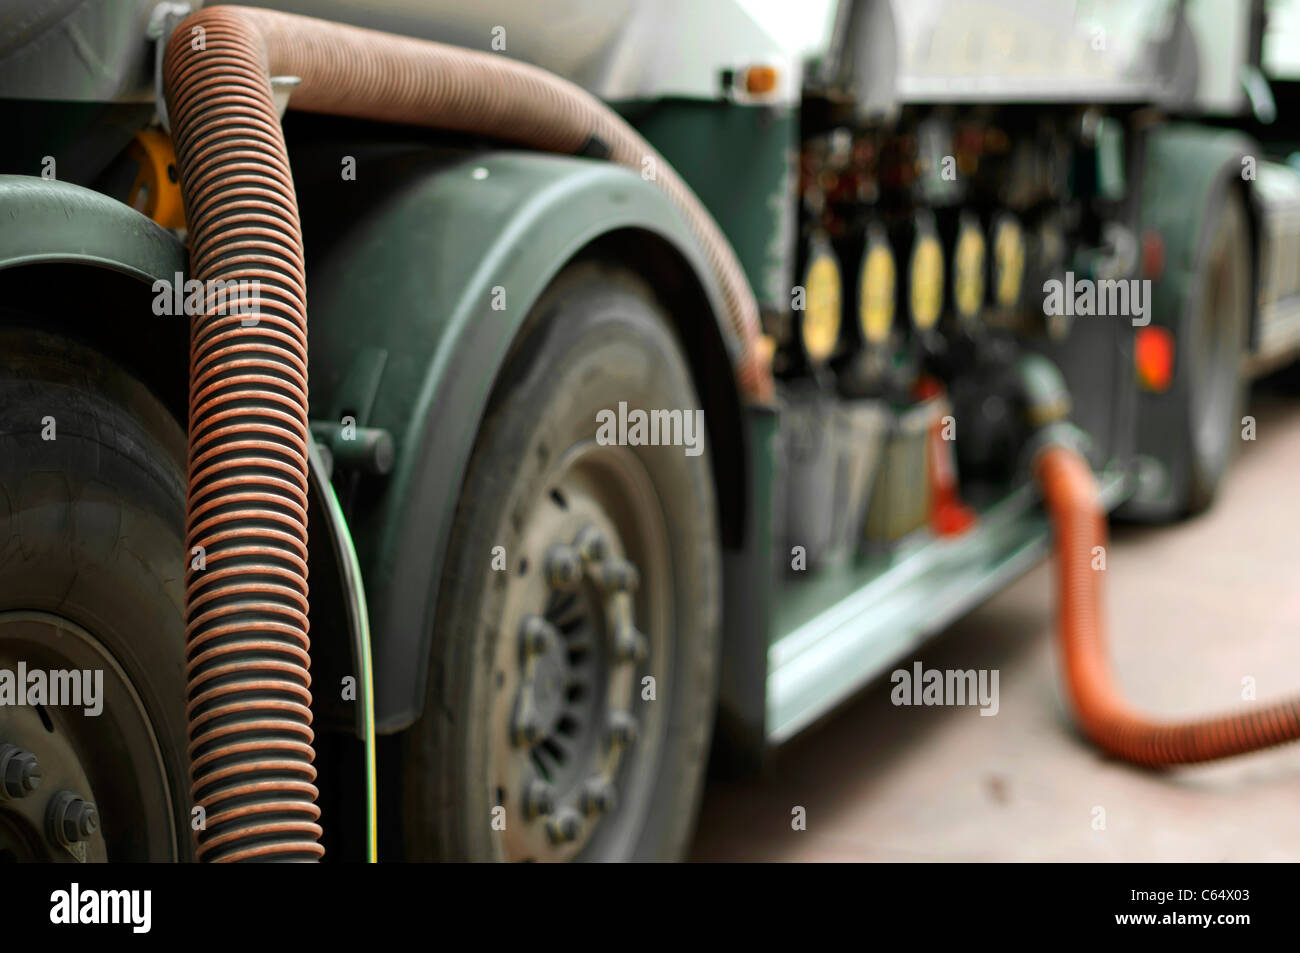 Fuel truck which refill. Hoses and pumps to load the truck - Stock Image